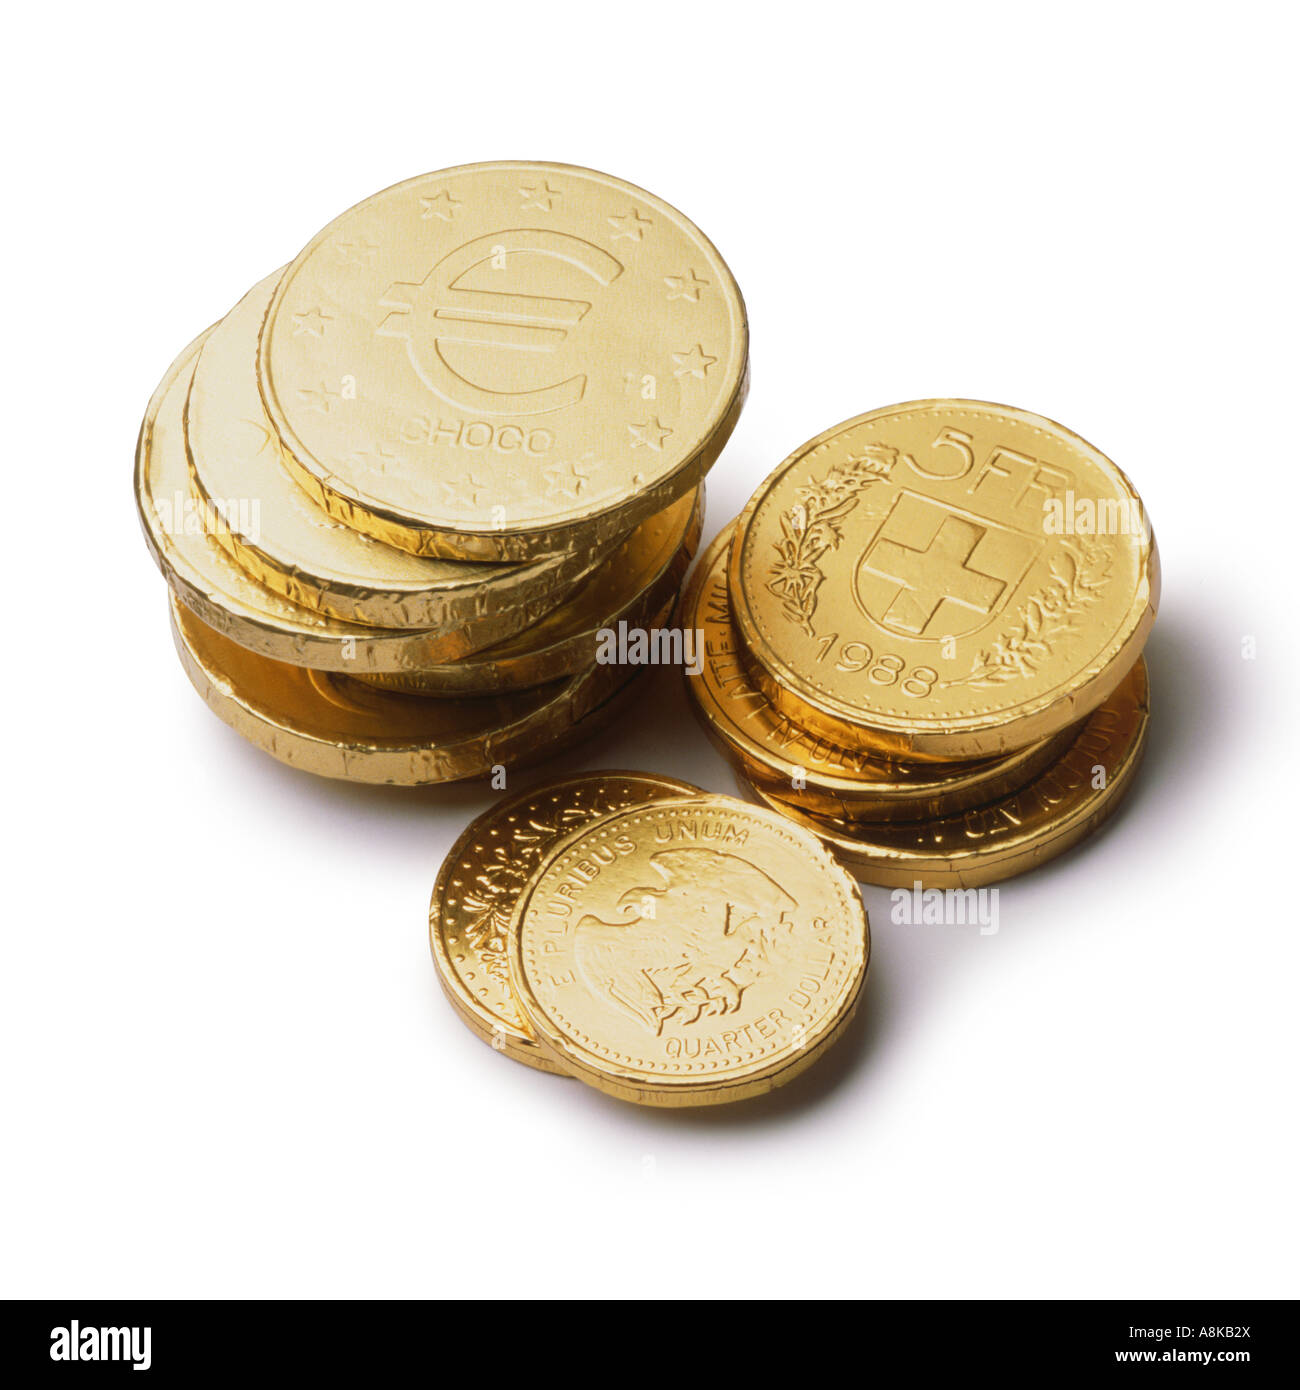 Chocolate money stock photos chocolate money stock images alamy piles of chocolate coins stock image spiritdancerdesigns Image collections